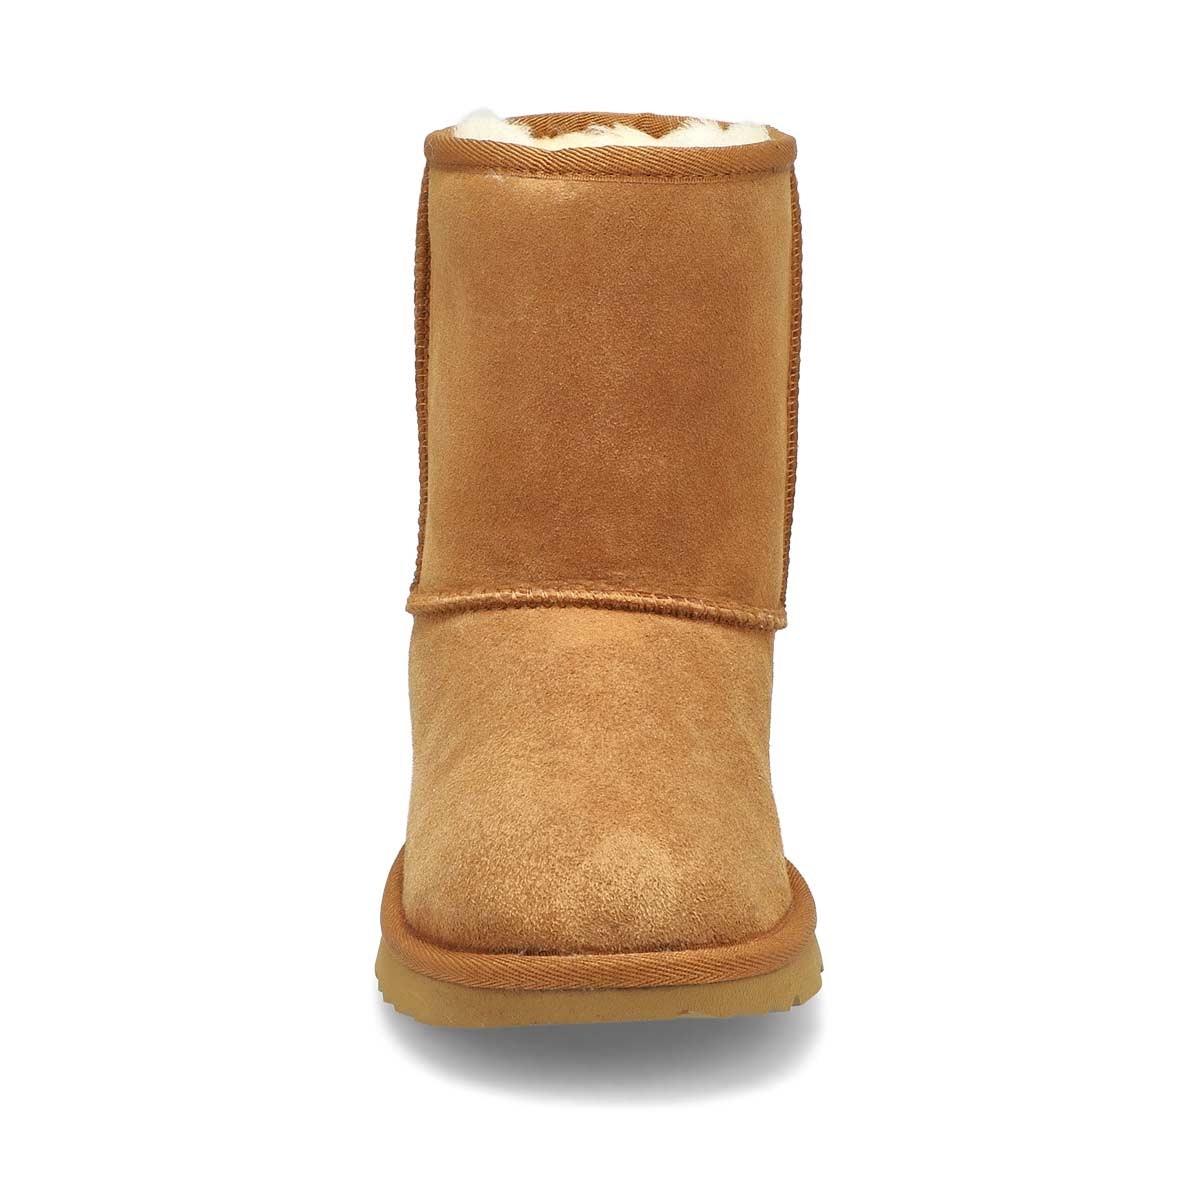 Grls Classic II chestnut sheepskin boot